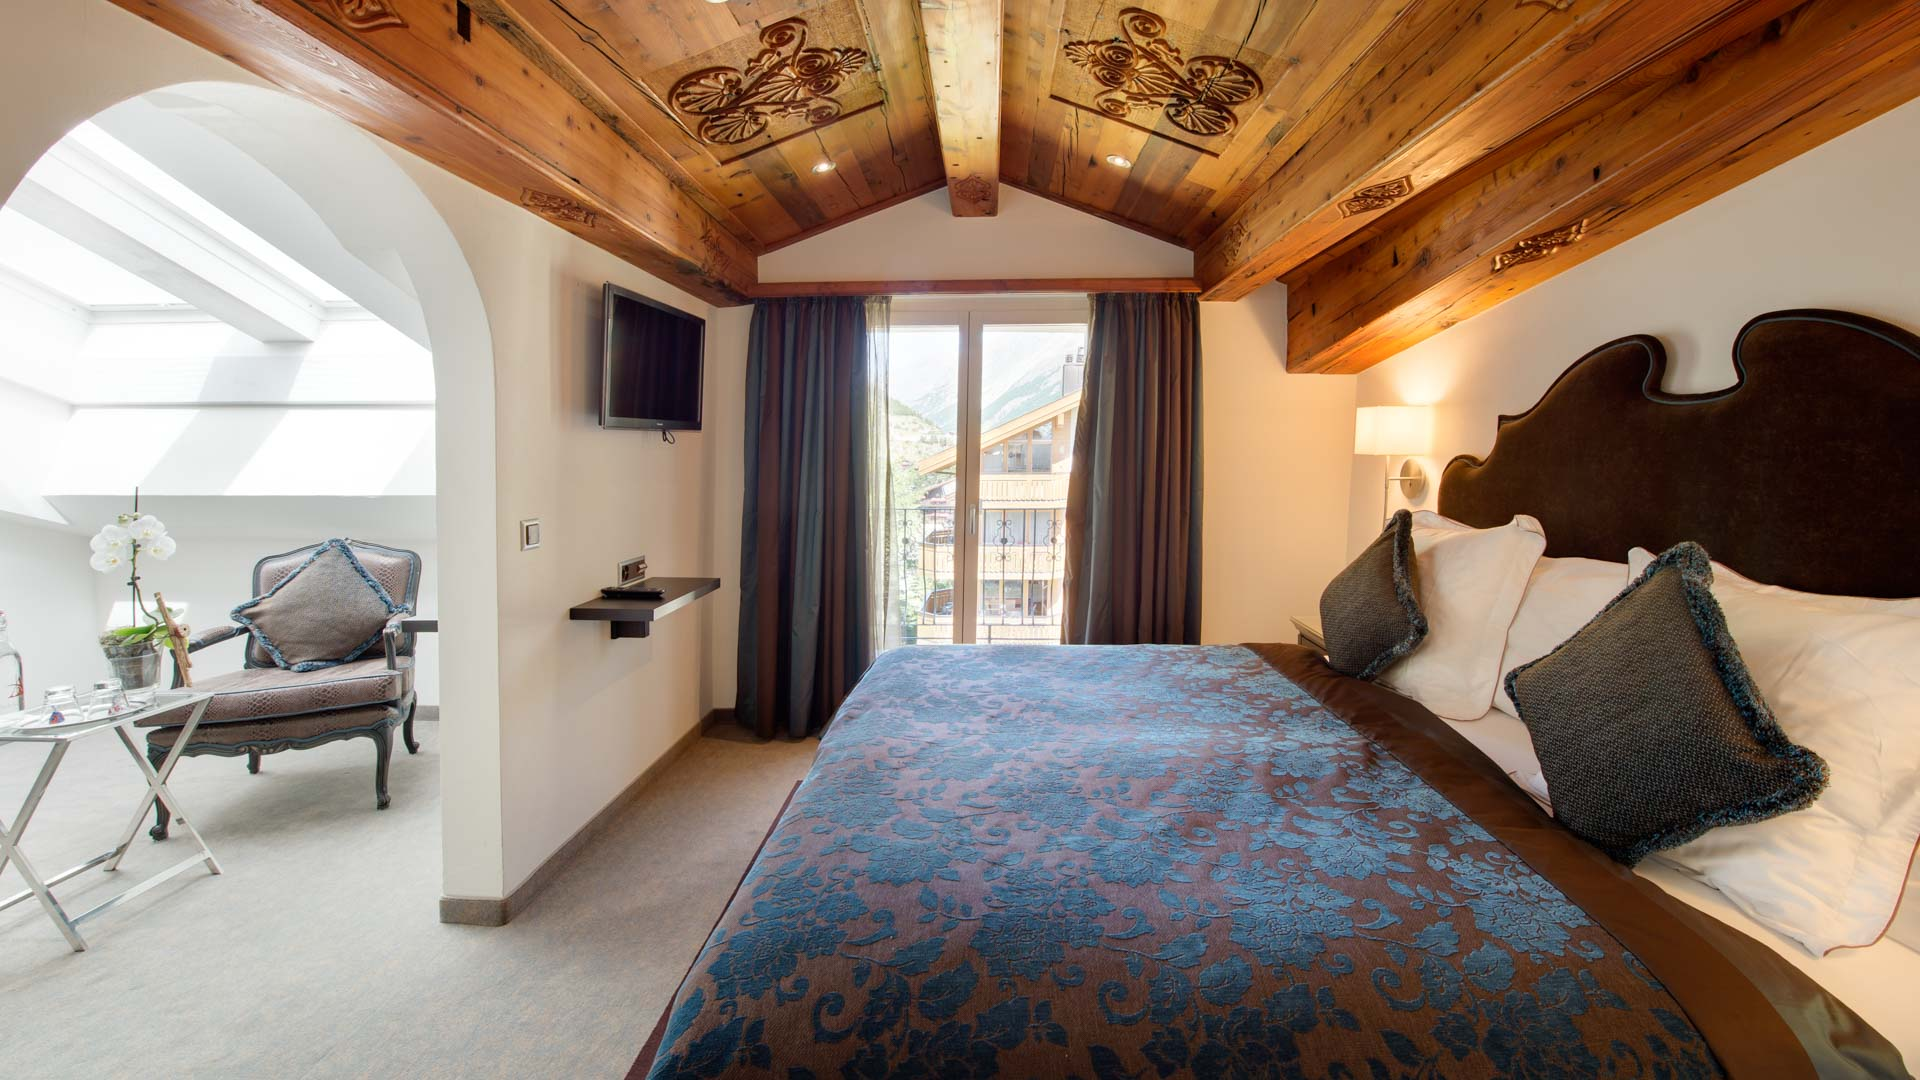 07_schlosshotel-zermatt-boutique-junior-suite.jpg